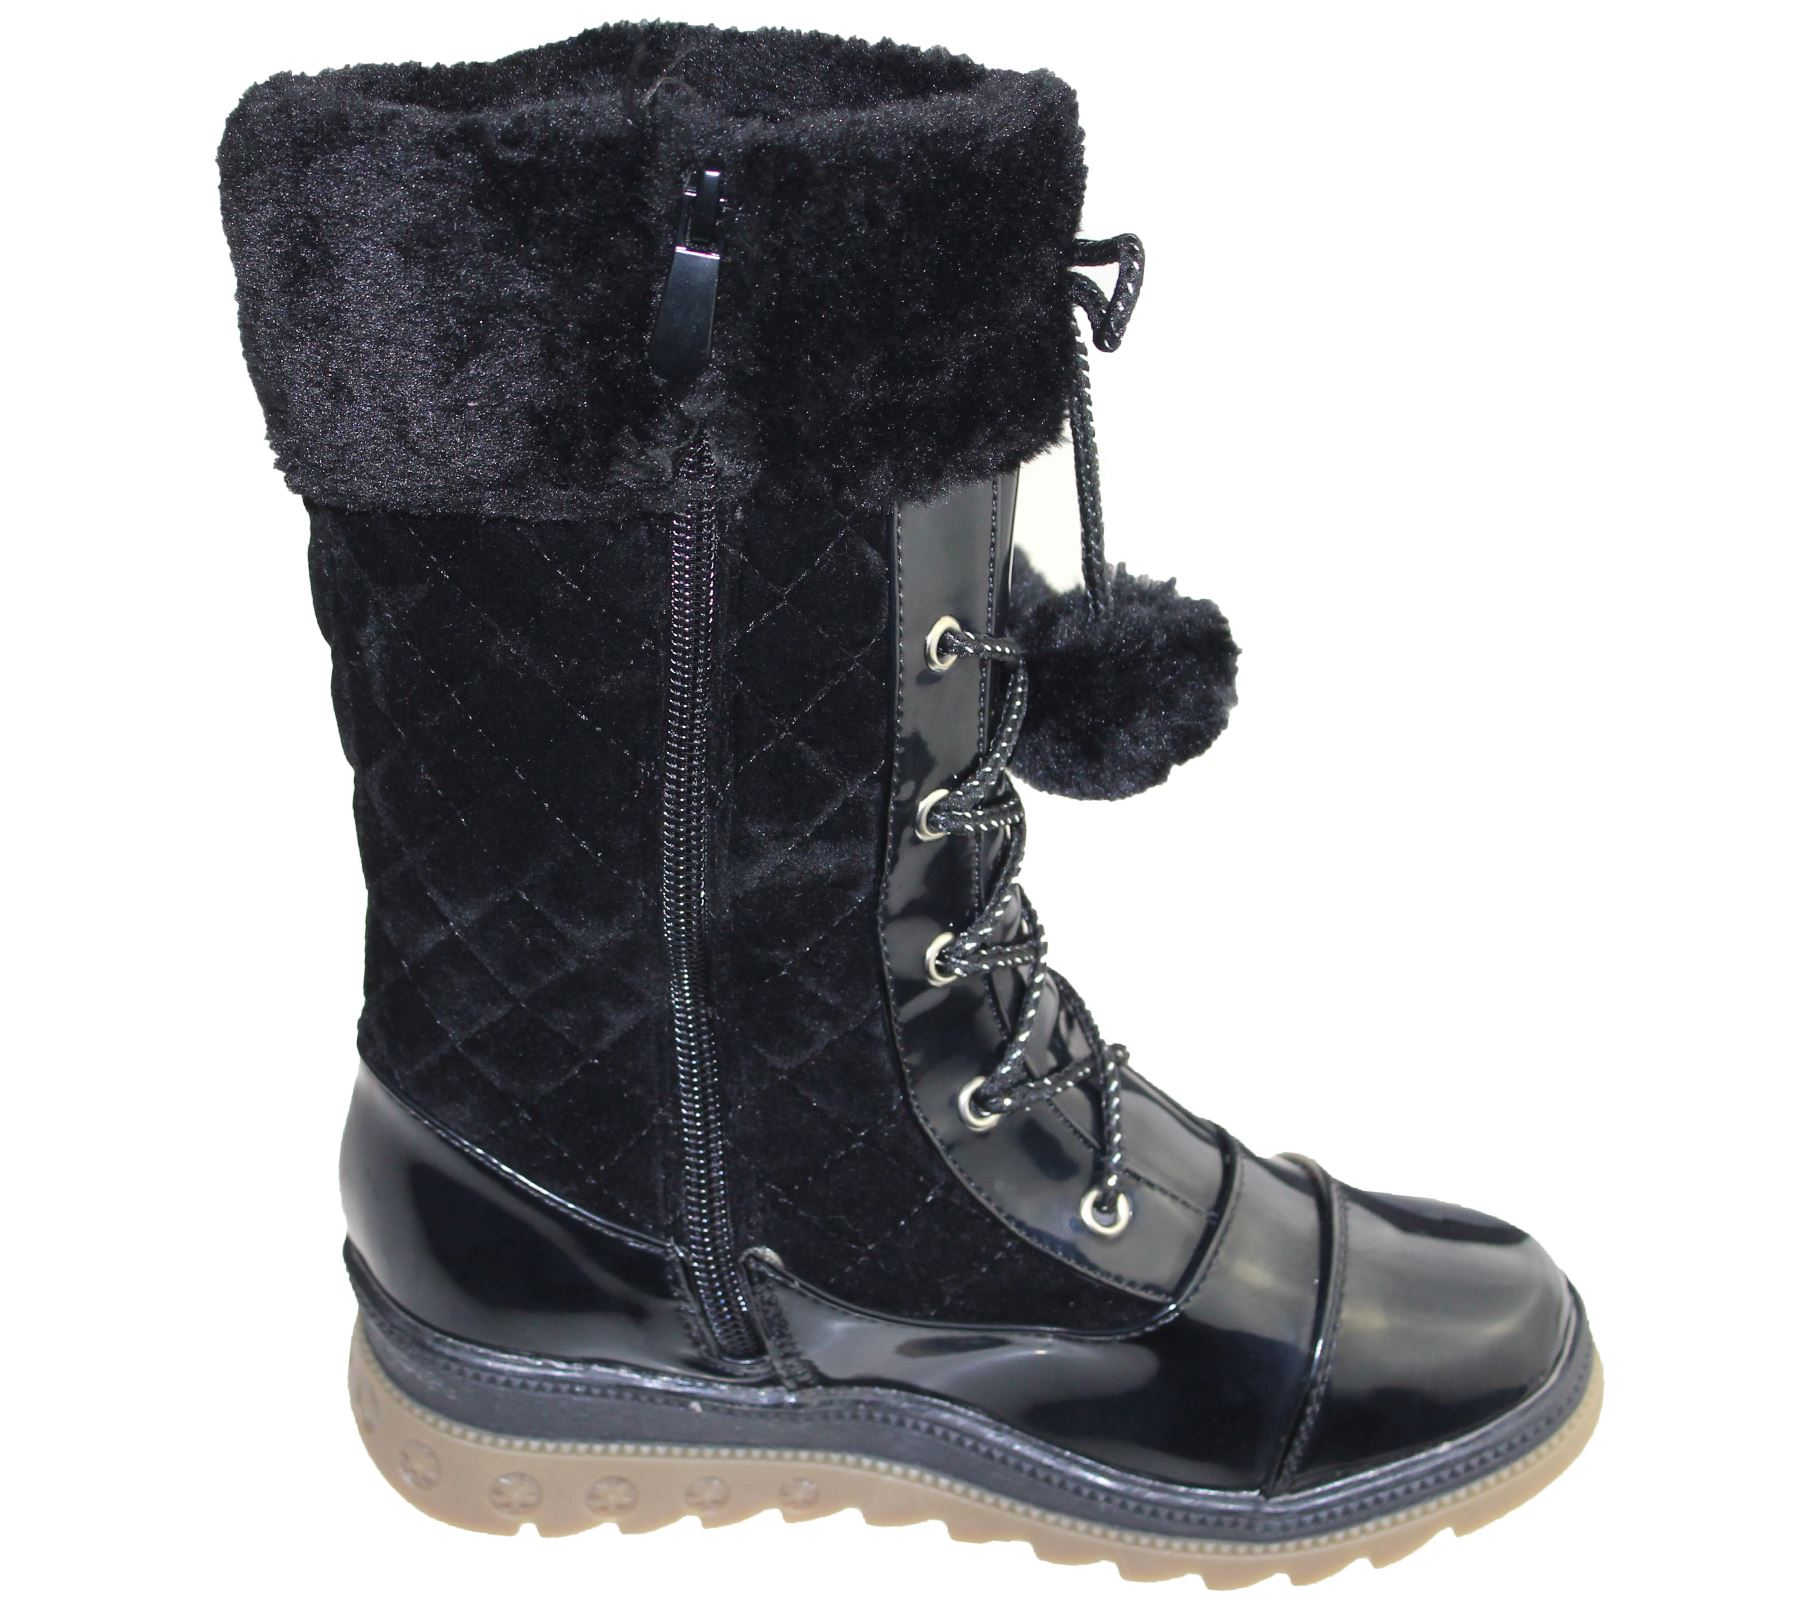 Top 5 Winter Boots for Infants and Babies Who Are Not Walking